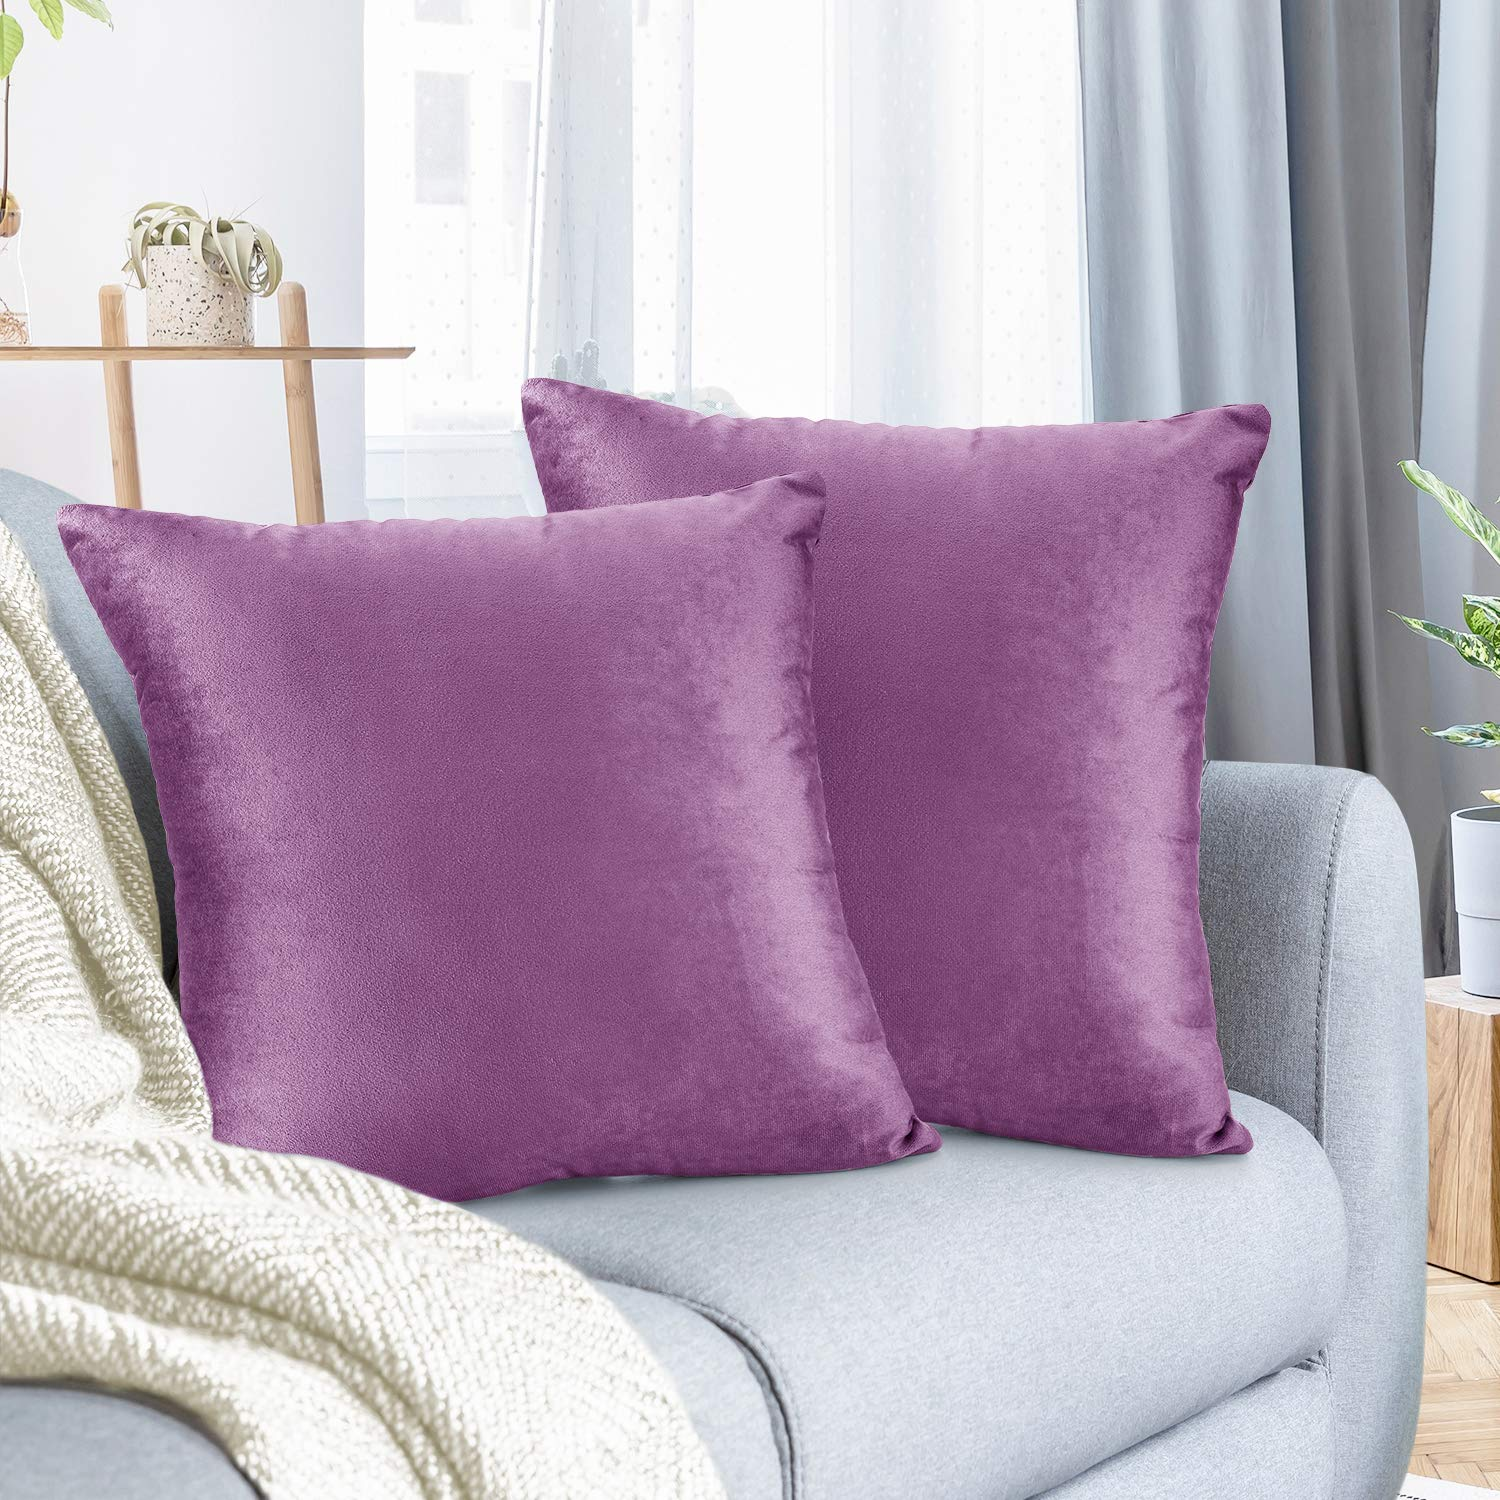 """Nestl Bedding Throw Pillow Cover 18"""" x 18"""" Soft Square Decorative Throw Pillow Covers Cozy Velvet Cushion Case for Sofa Couch Bedroom, Set of 2, Lavender Dream"""